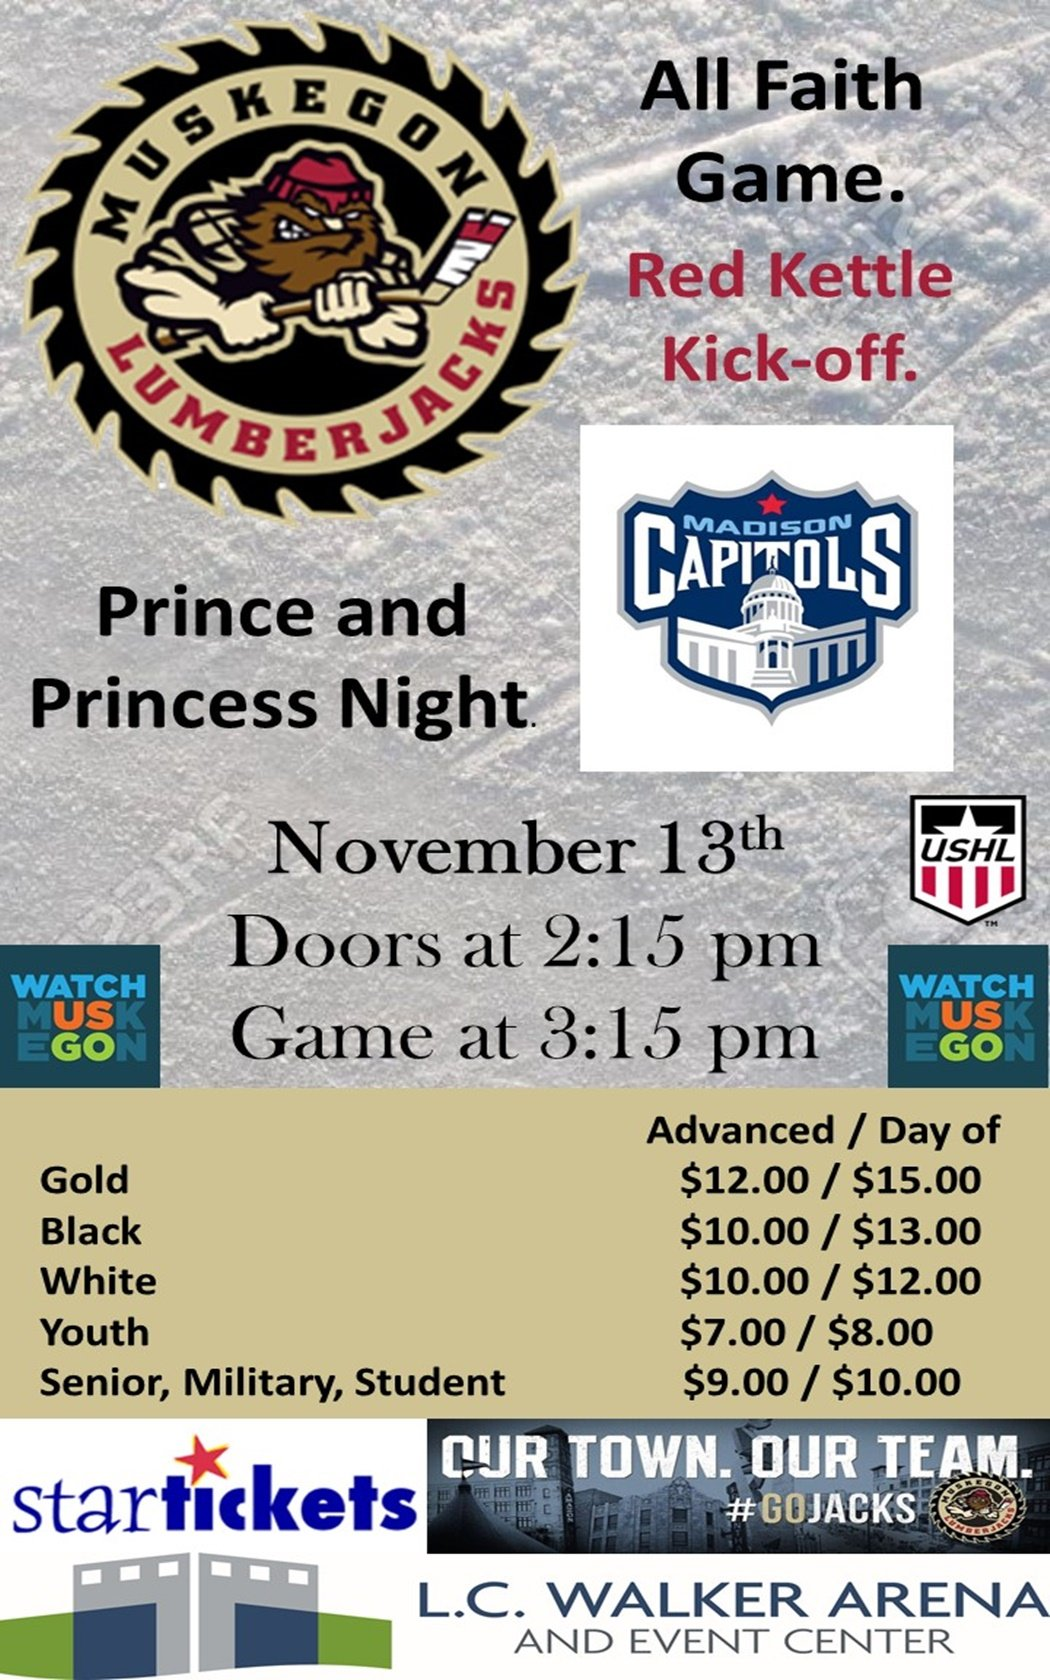 Nov 13 – Muskegon Lumberjacks vs Madison Capitals